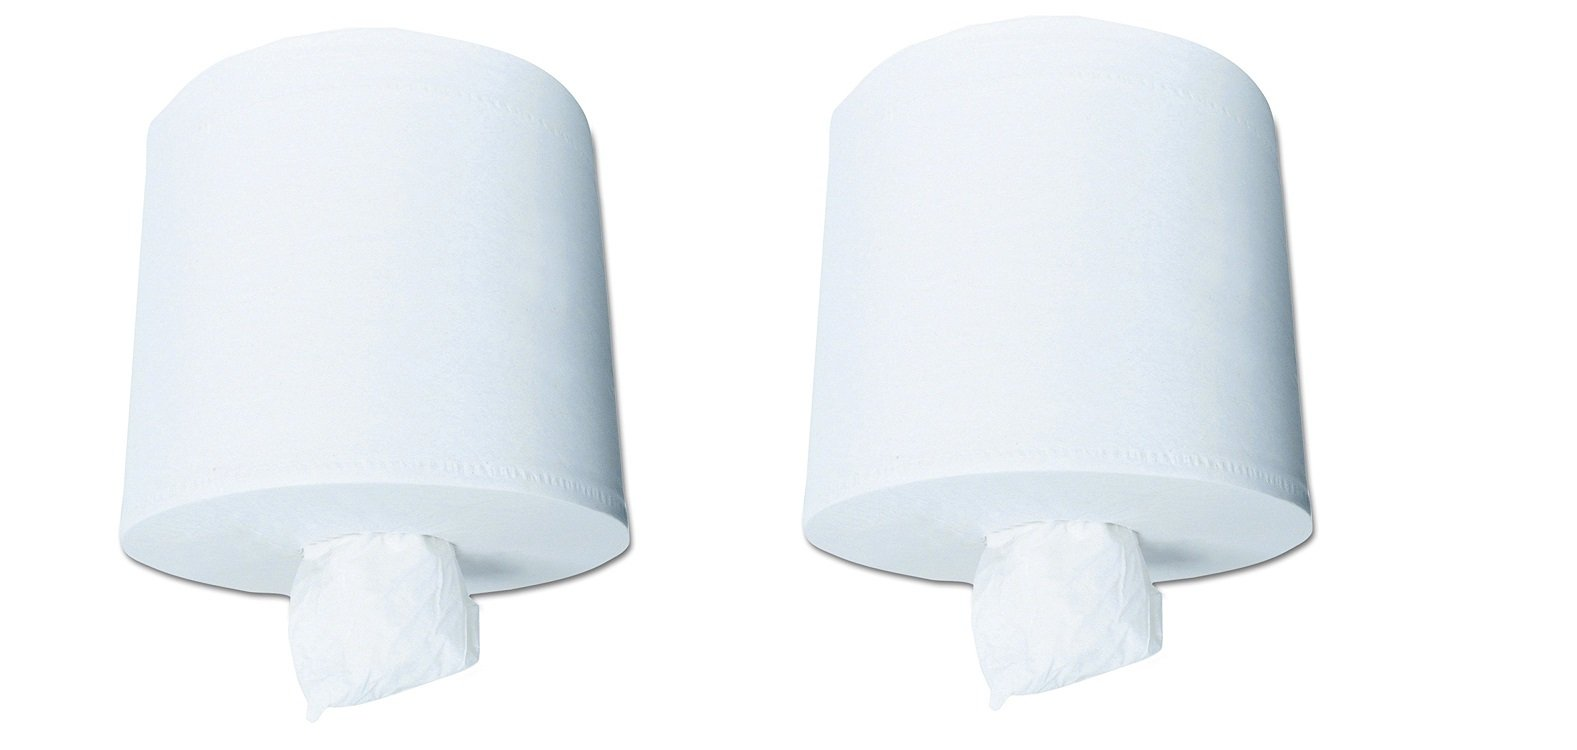 Scott Center Pull Paper Towels (01010), White, Perforated Hand Paper Towels, 500 Towels / Roll, 4 Rolls / Case (2-(Pack))